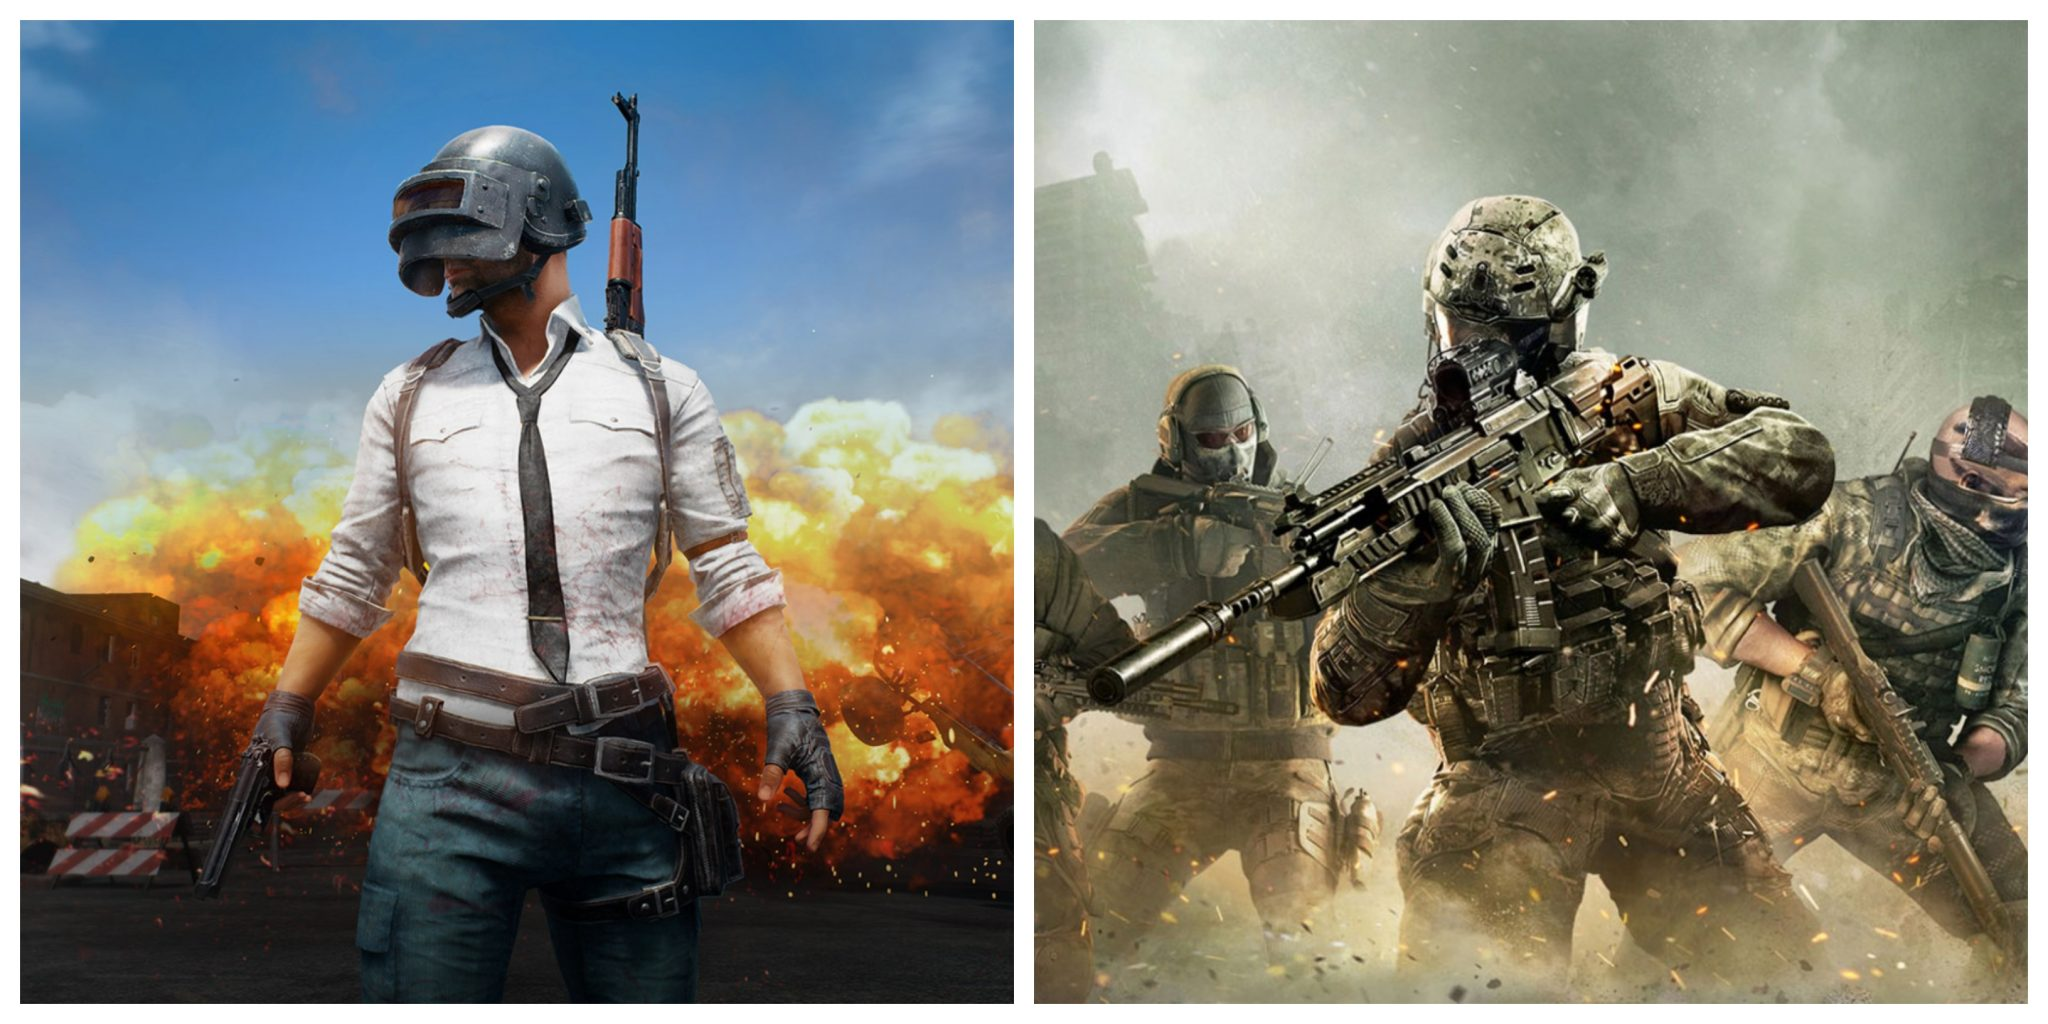 pubg vs call of duty- logo of pubg and call of duty